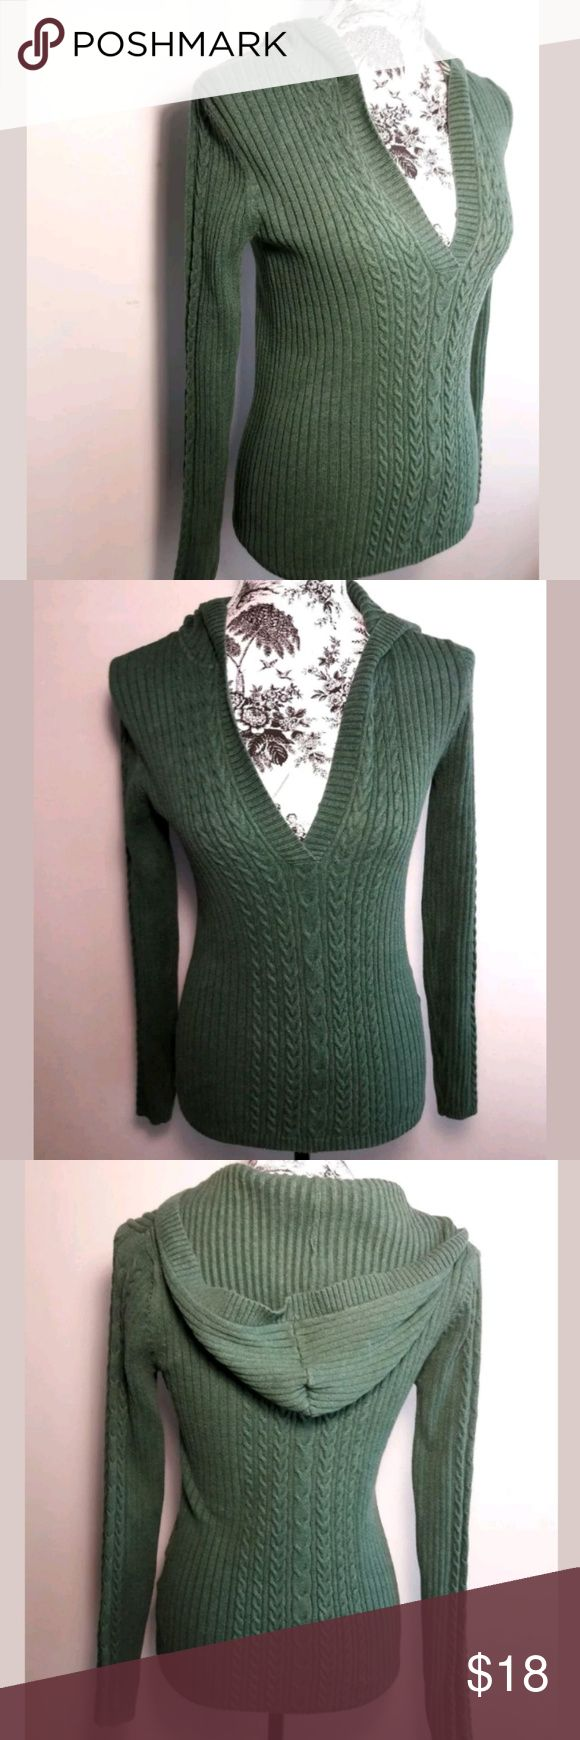 Old Nacy Gren Cable Knit V-Neck Sweatee Size XS Old Navy  Ladies Green Cable Knit V Neck Sweater with Hood Medium Knit. This sweater is very fashionable & Chic. Pairs well with Jeans or Slacks, Heels, Boots or Flats. The Perfect addition to add to your wardrobe. A Must Have!  Women's XSmall  Pre-owned in Excellent condition  Please be sure to view all images before purchasing  Thank you for Looking & Sharing Happy Poshing😄 Old Navy Sweaters V-Necks